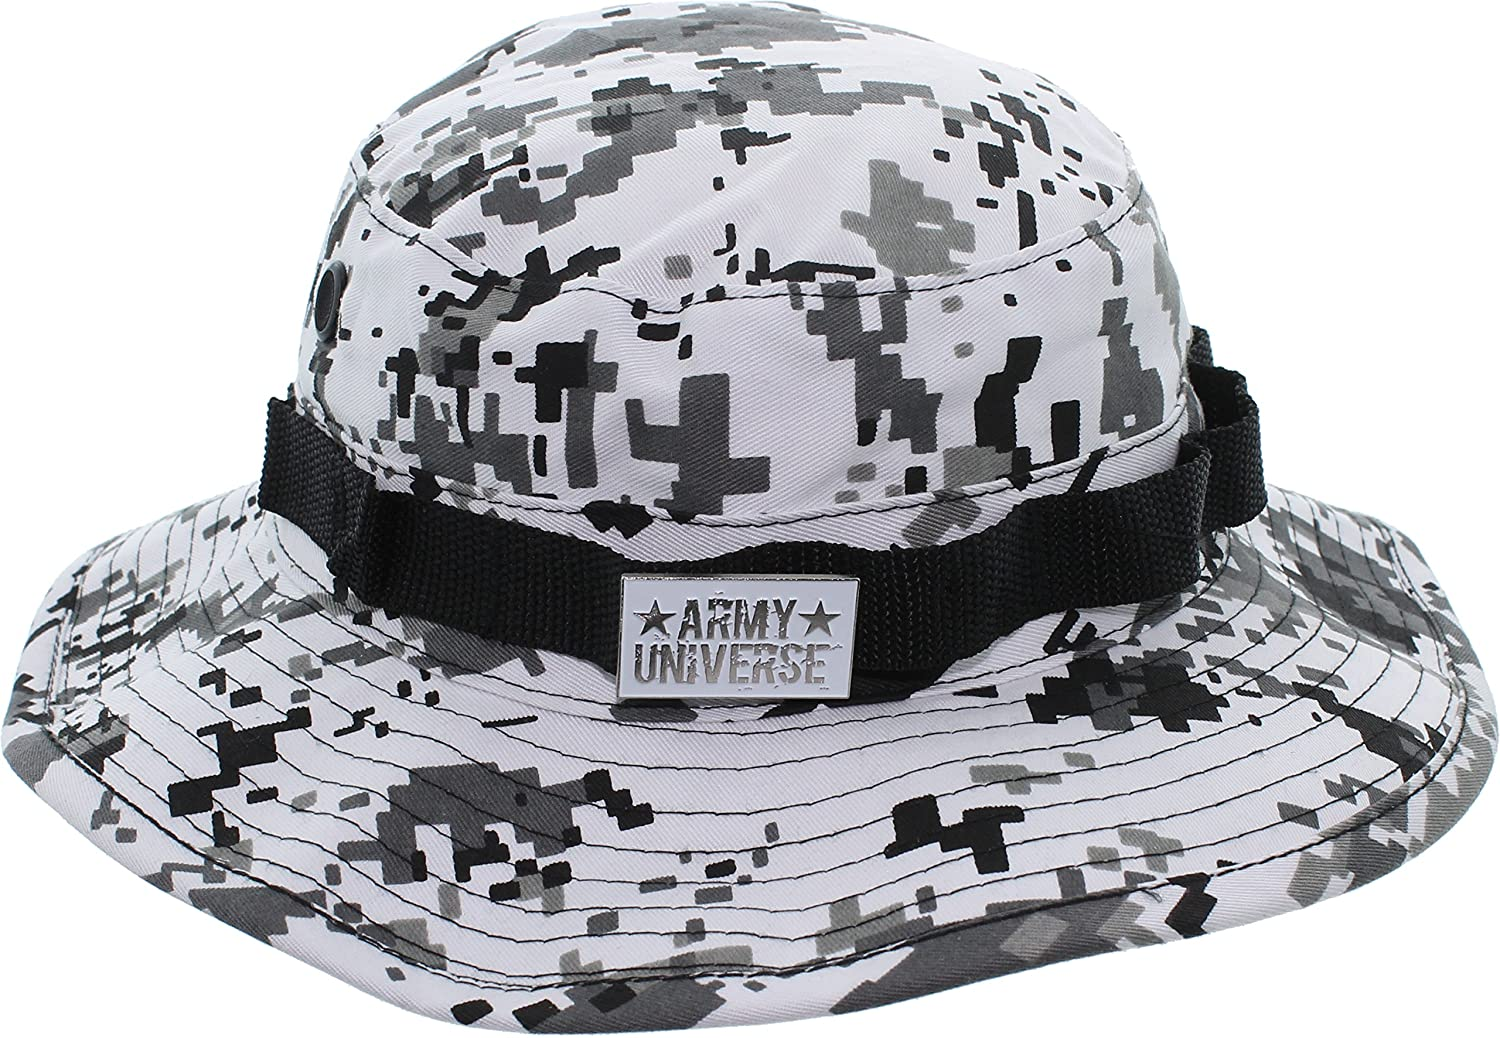 Army Universe Tactical Boonie Hat Military Camo Bucket Wide Brim Sun ... 1072f3eee34